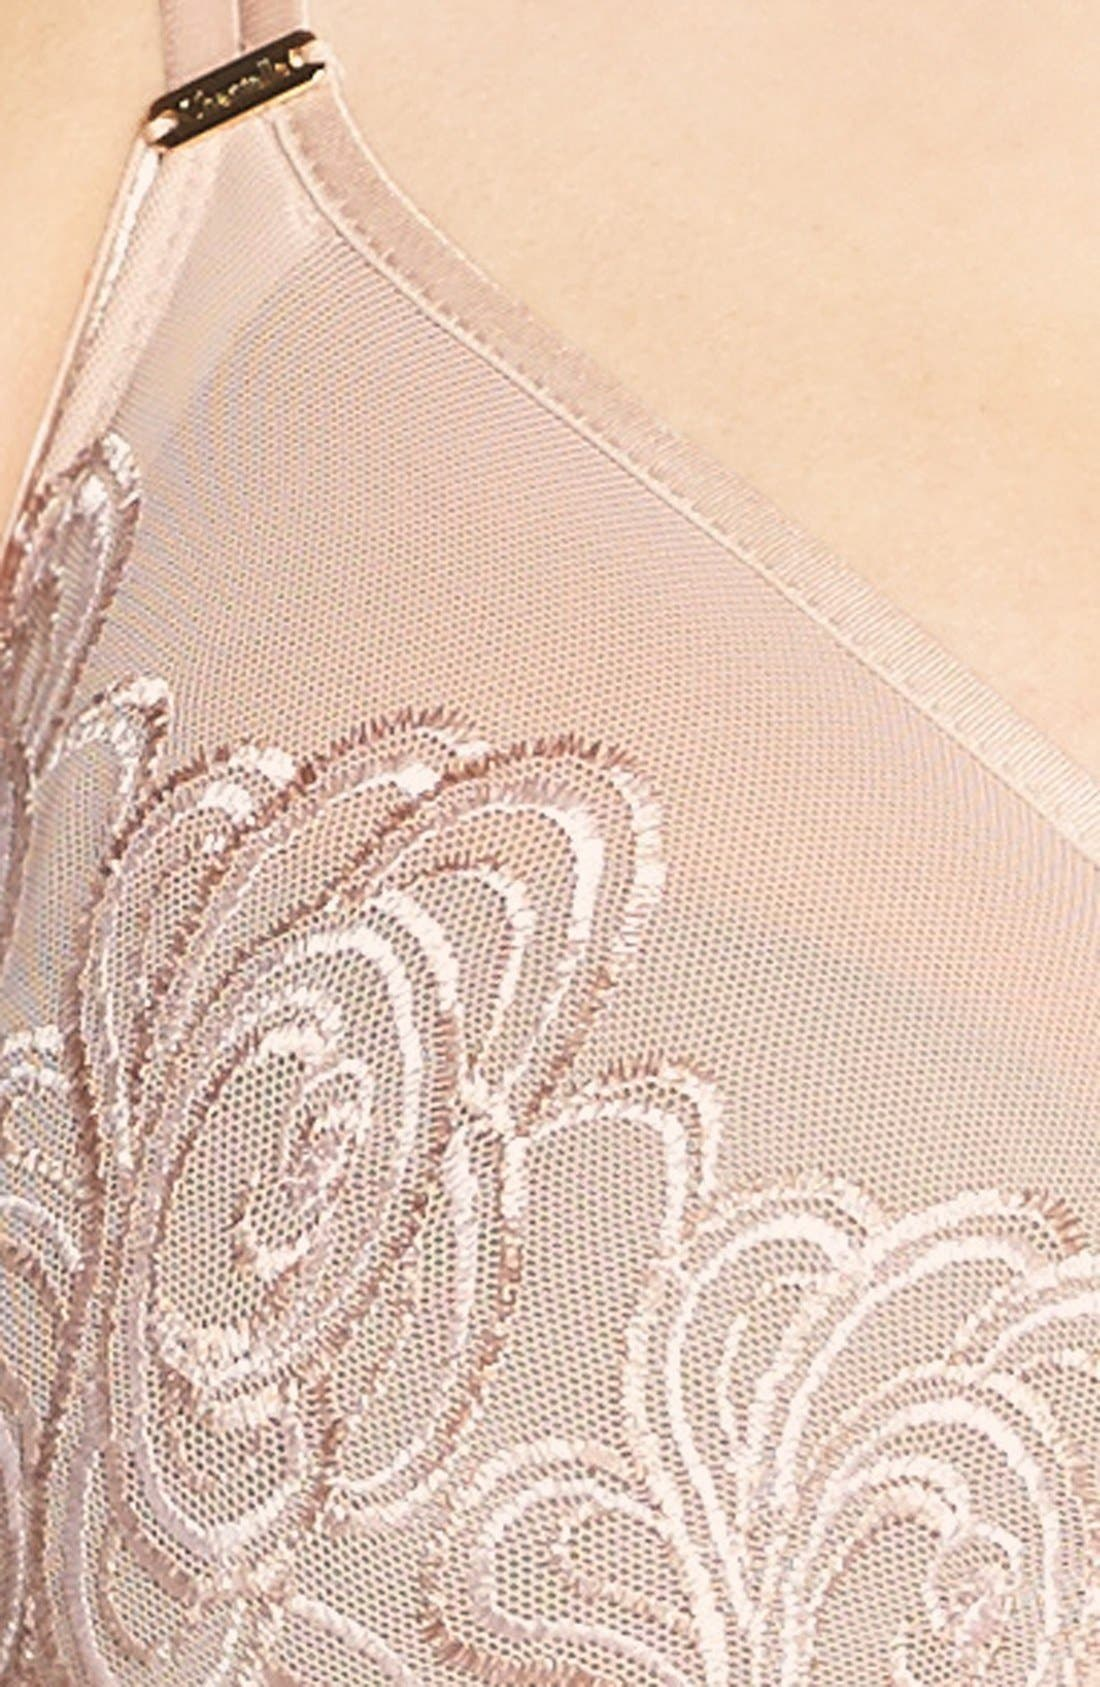 Alternate Image 5  - Chantelle Intimates 'Barocco' Embroidered Sheer Underwire Molded Bra (D-Cup & Up)